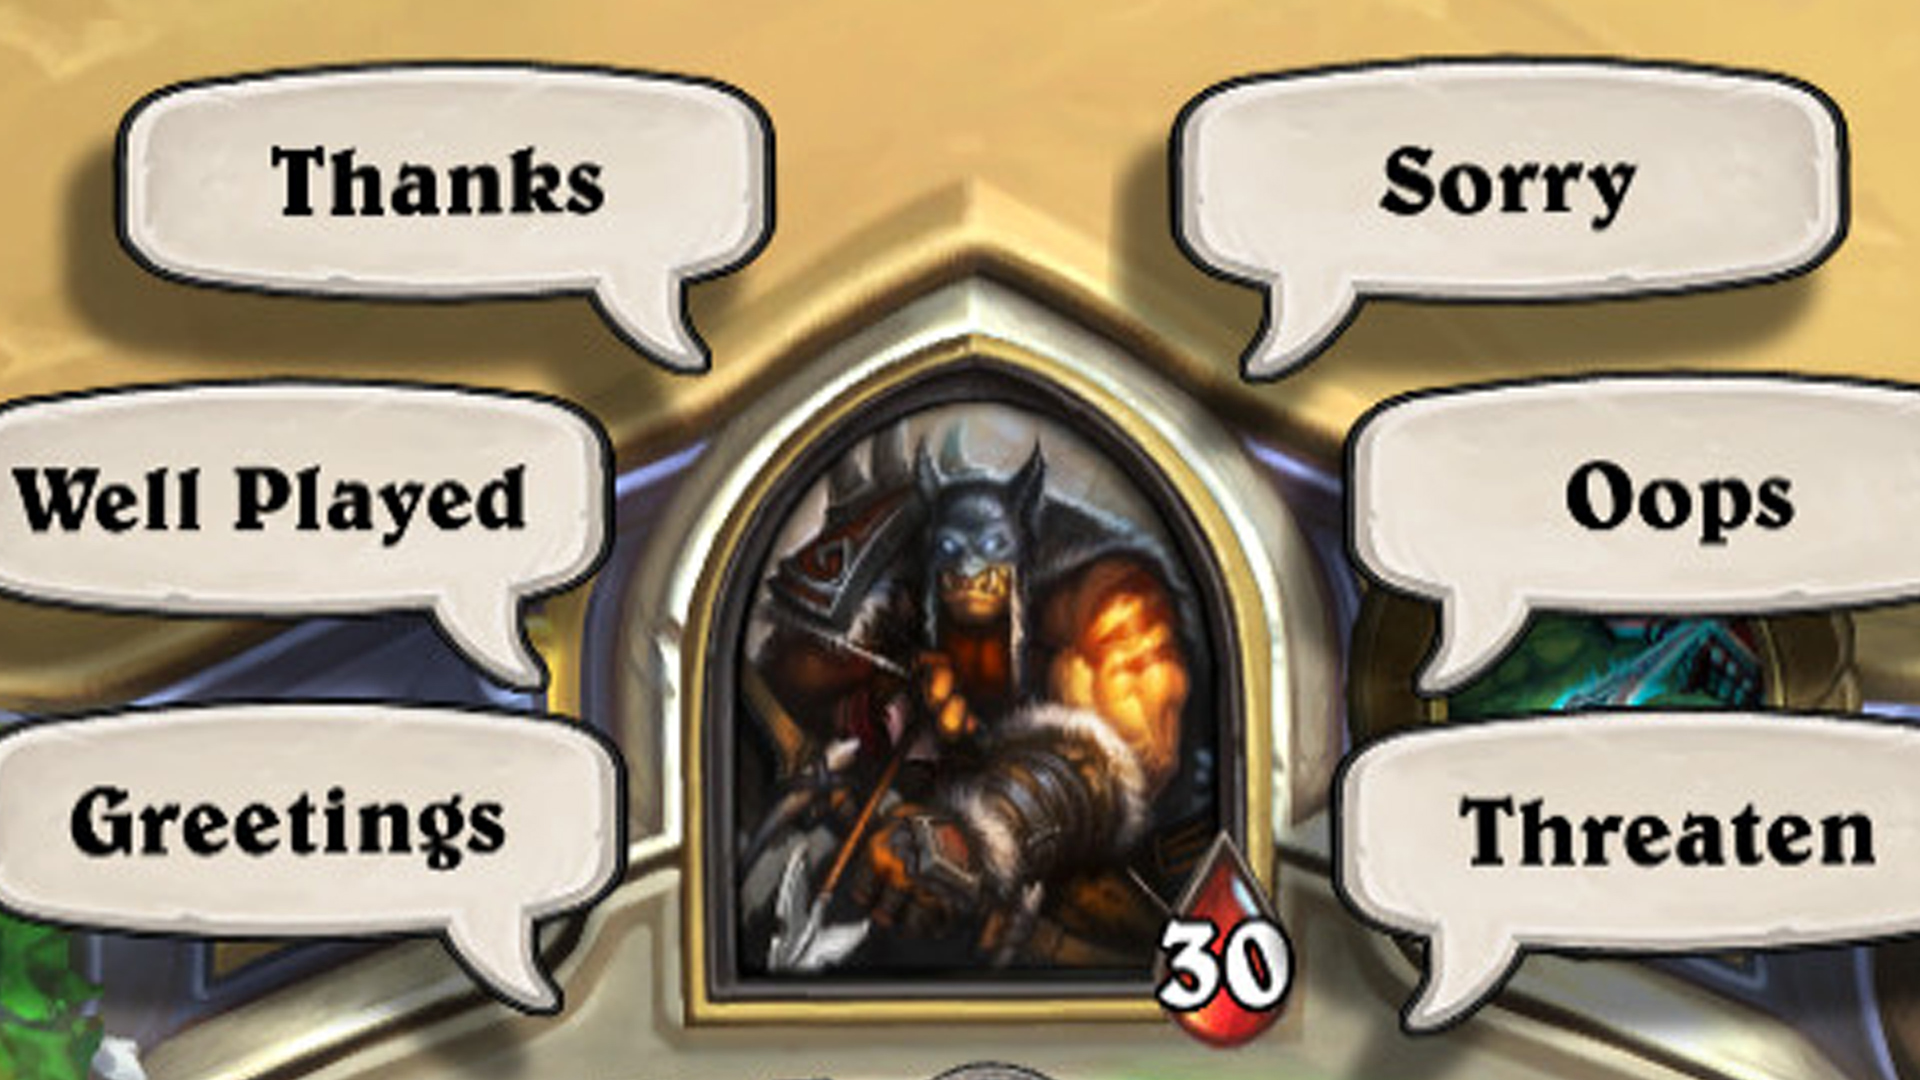 Hearthstone Classic doesn't feel right without the 'Sorry' emote